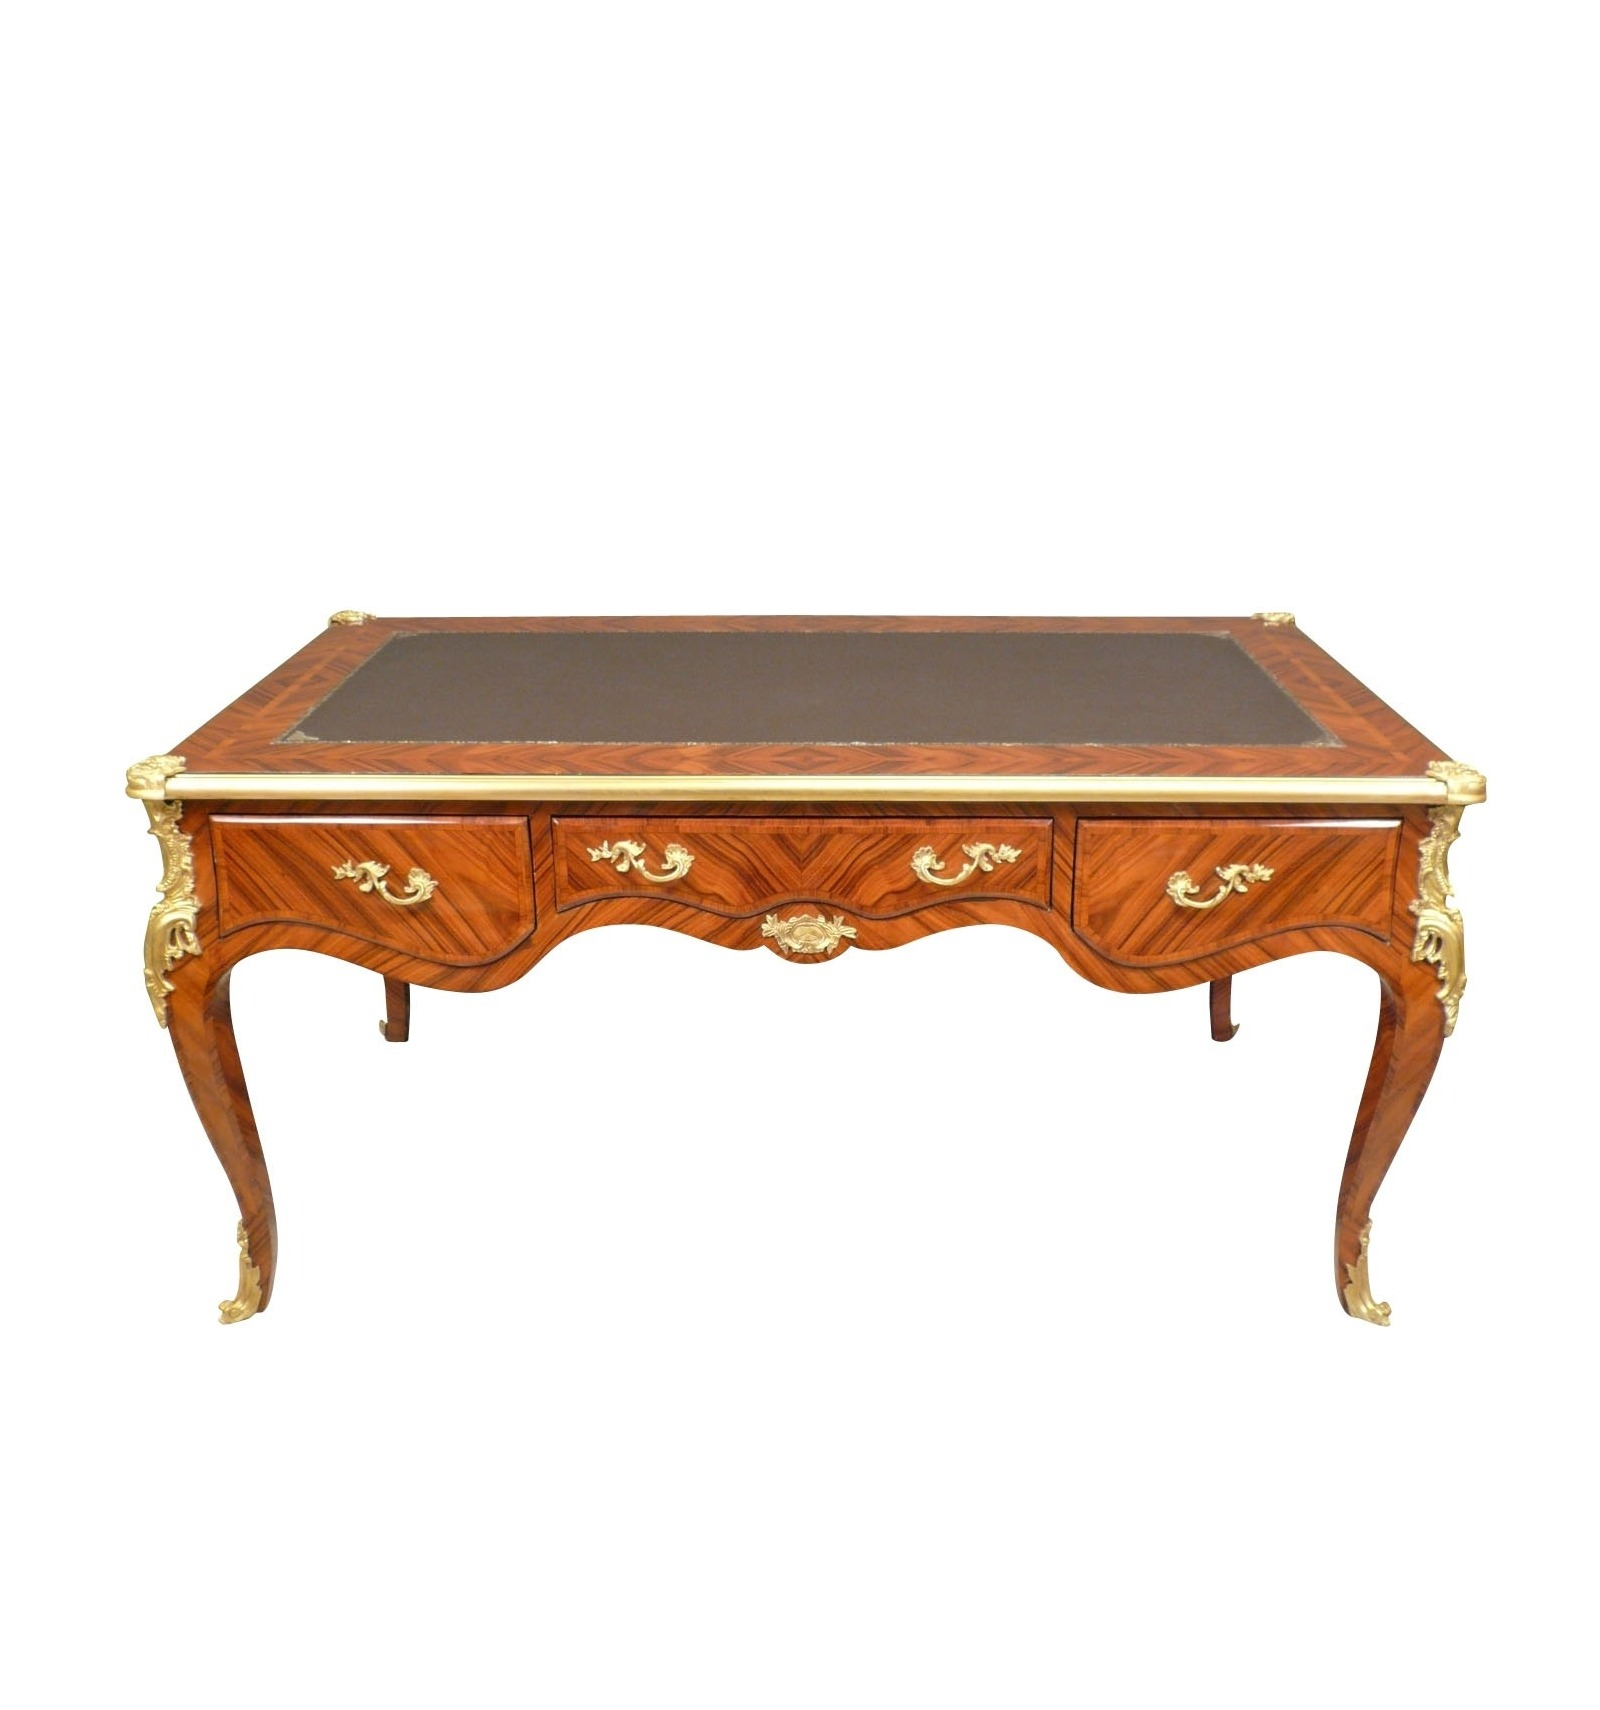 Louis XV desk in rosewood furniture style